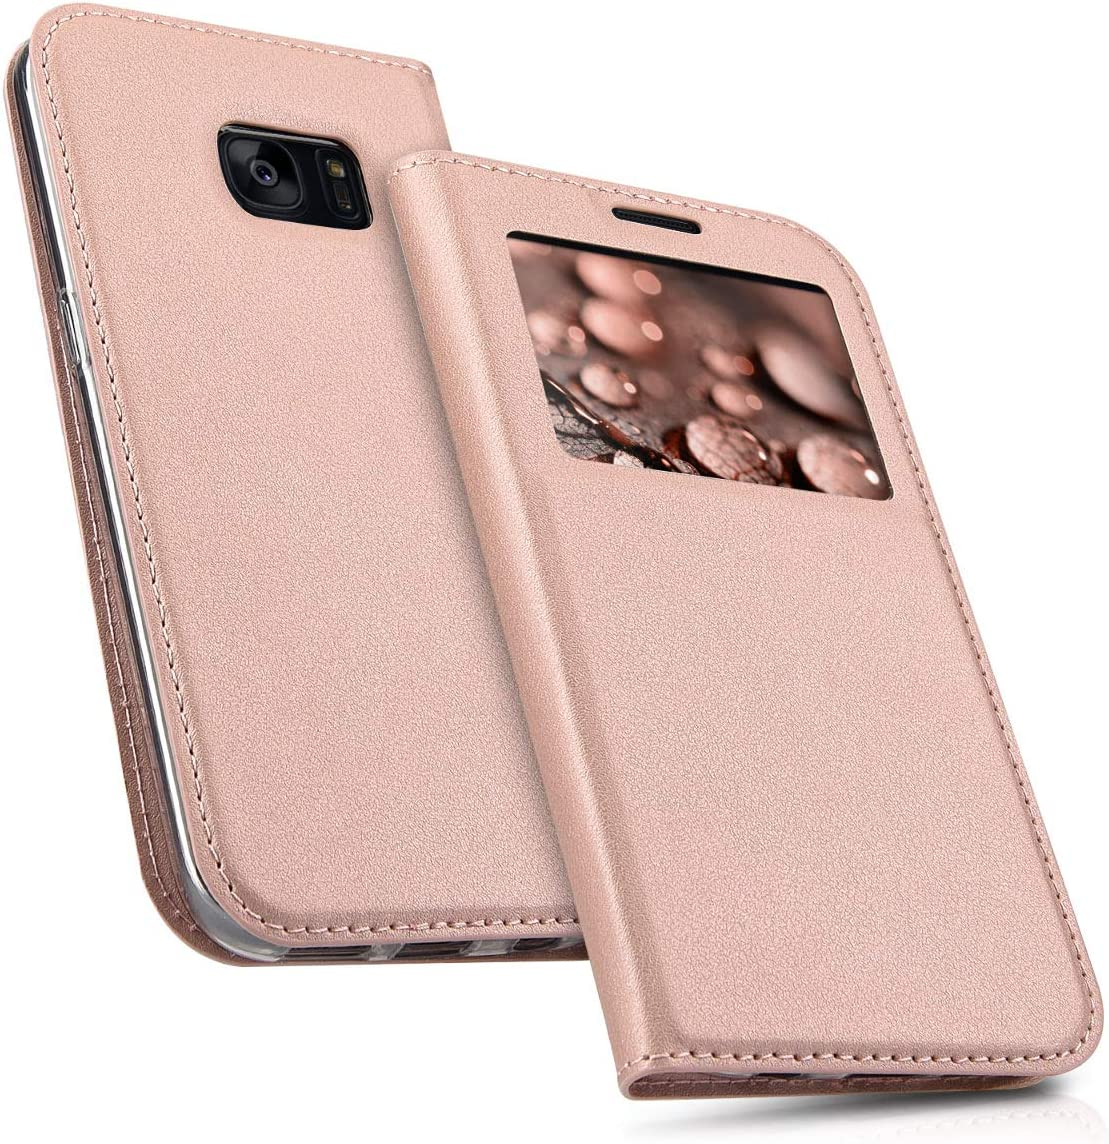 kwmobile Flip Case Compatible with Samsung Galaxy S7 - PU Leather Book Style Wallet Cover with Window - Rose Gold